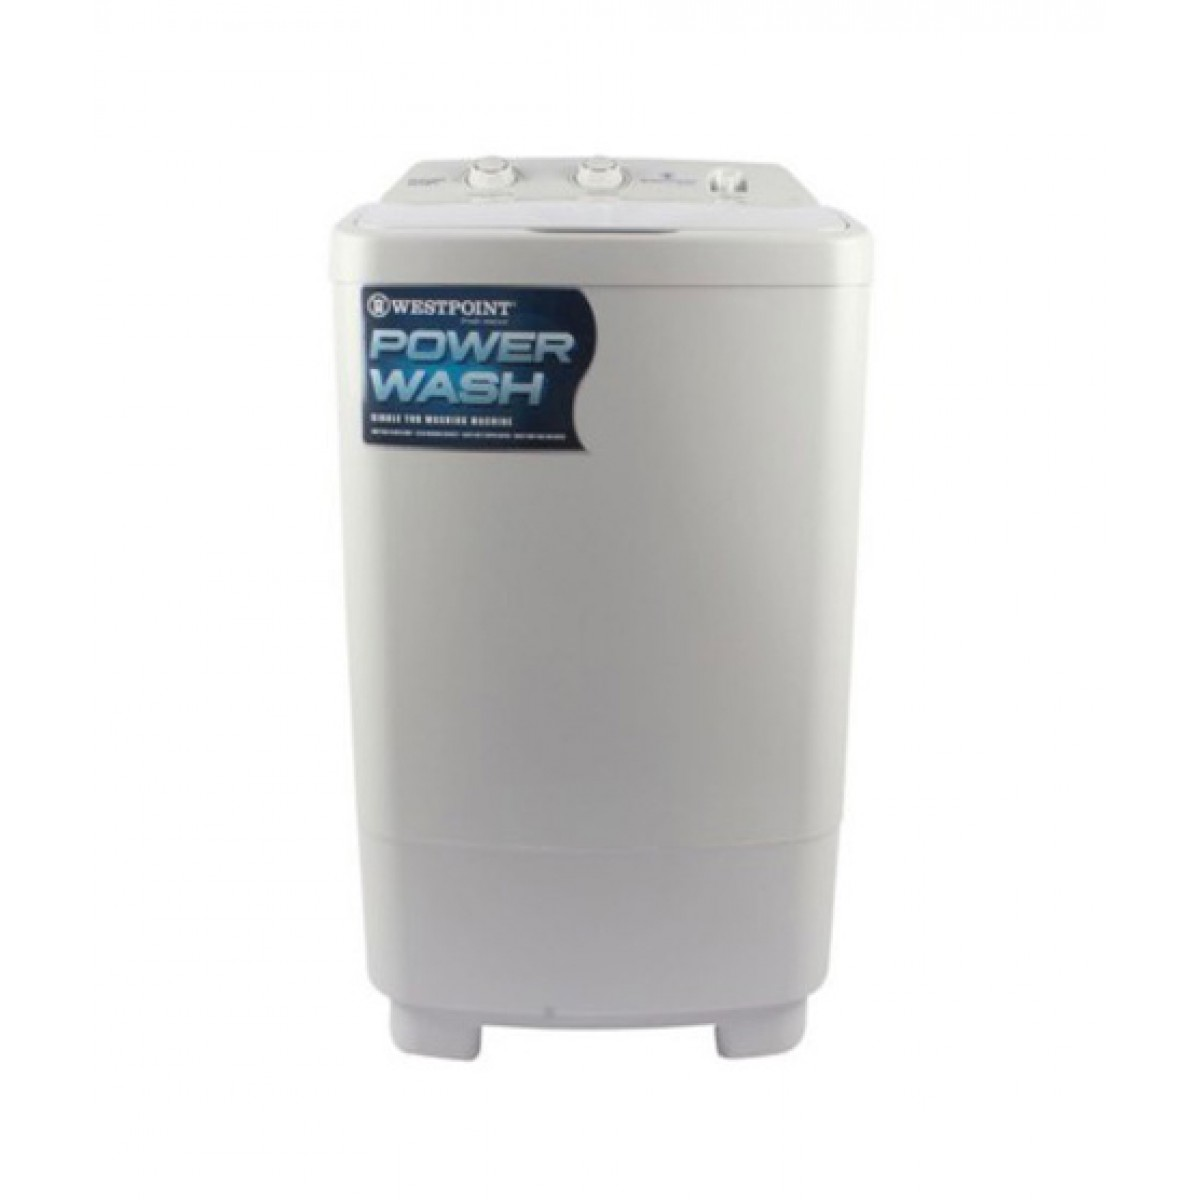 Westpoint SIngle Tub Semi Automatic Washing Machine WF-1017